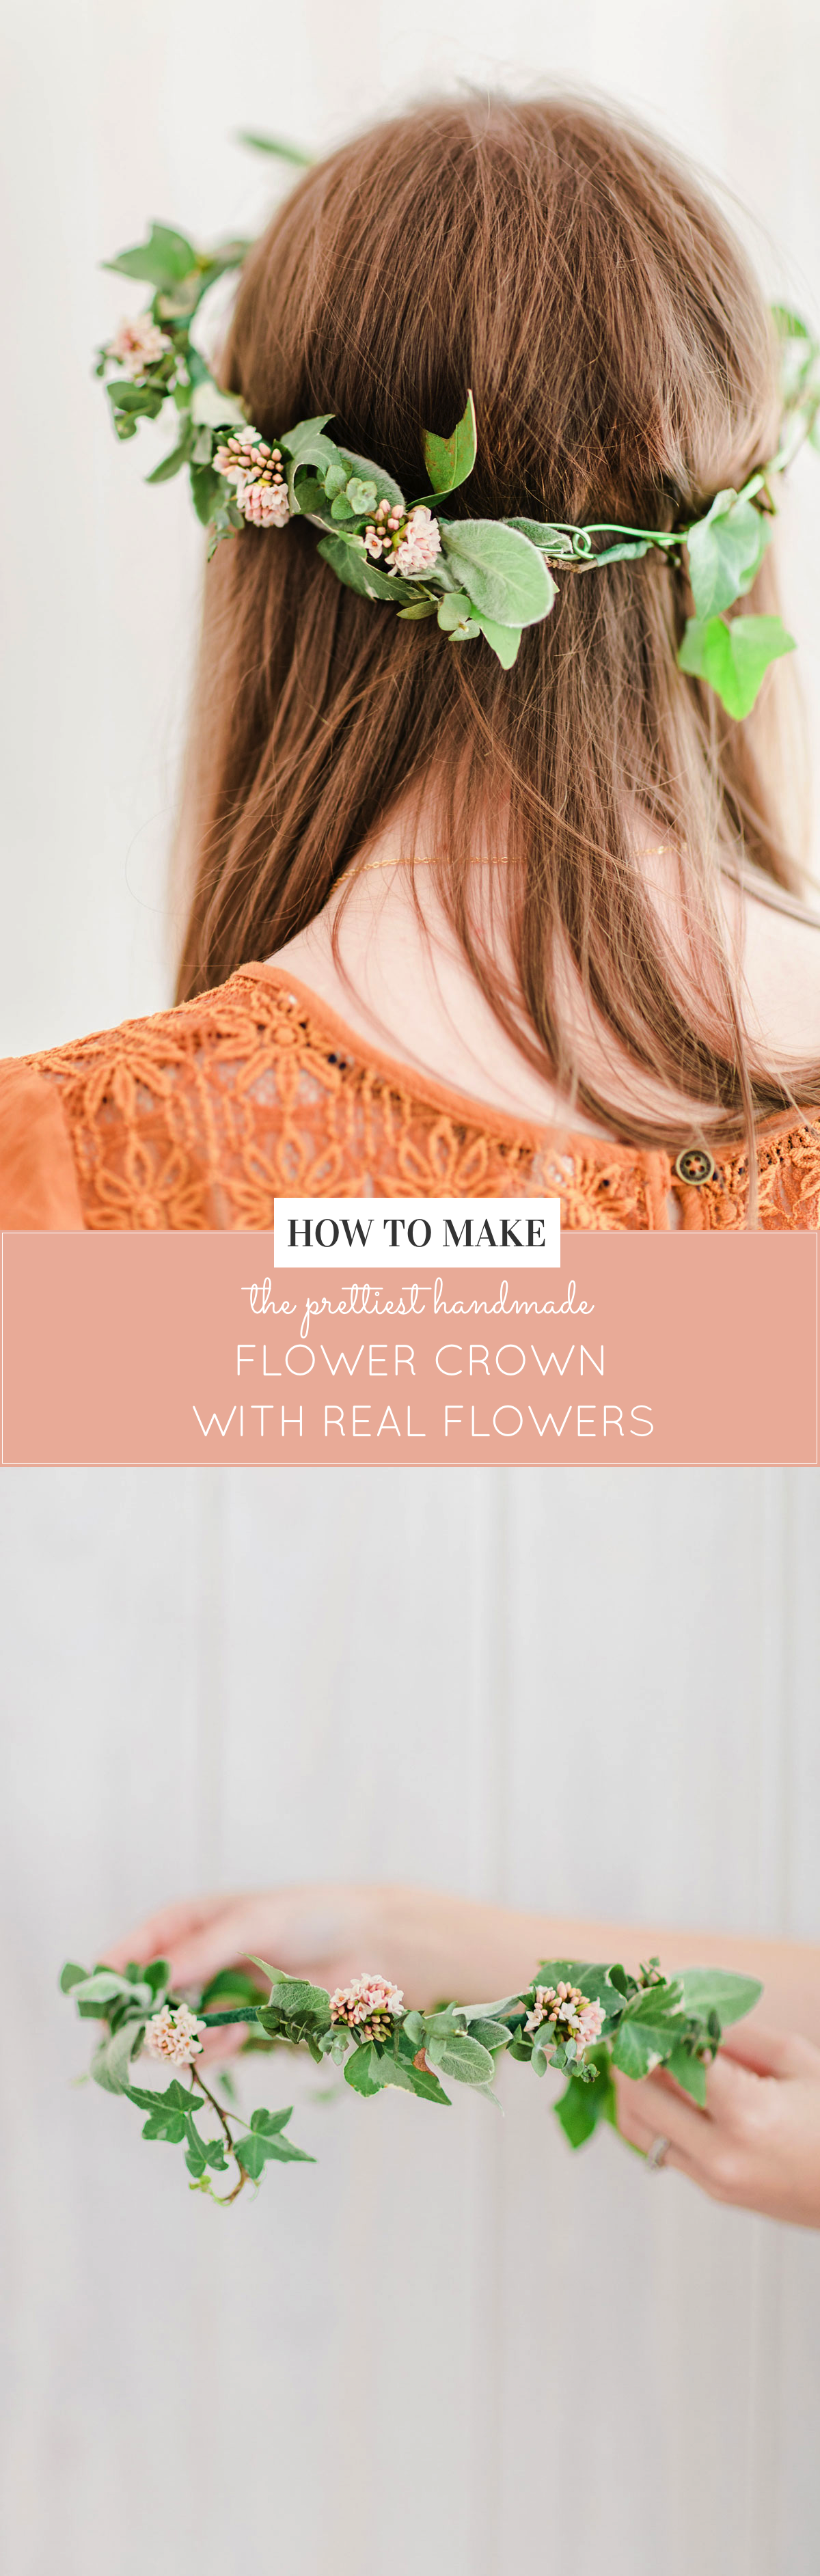 how-to-make-a-handmade-flower-crown-with-real-flowers